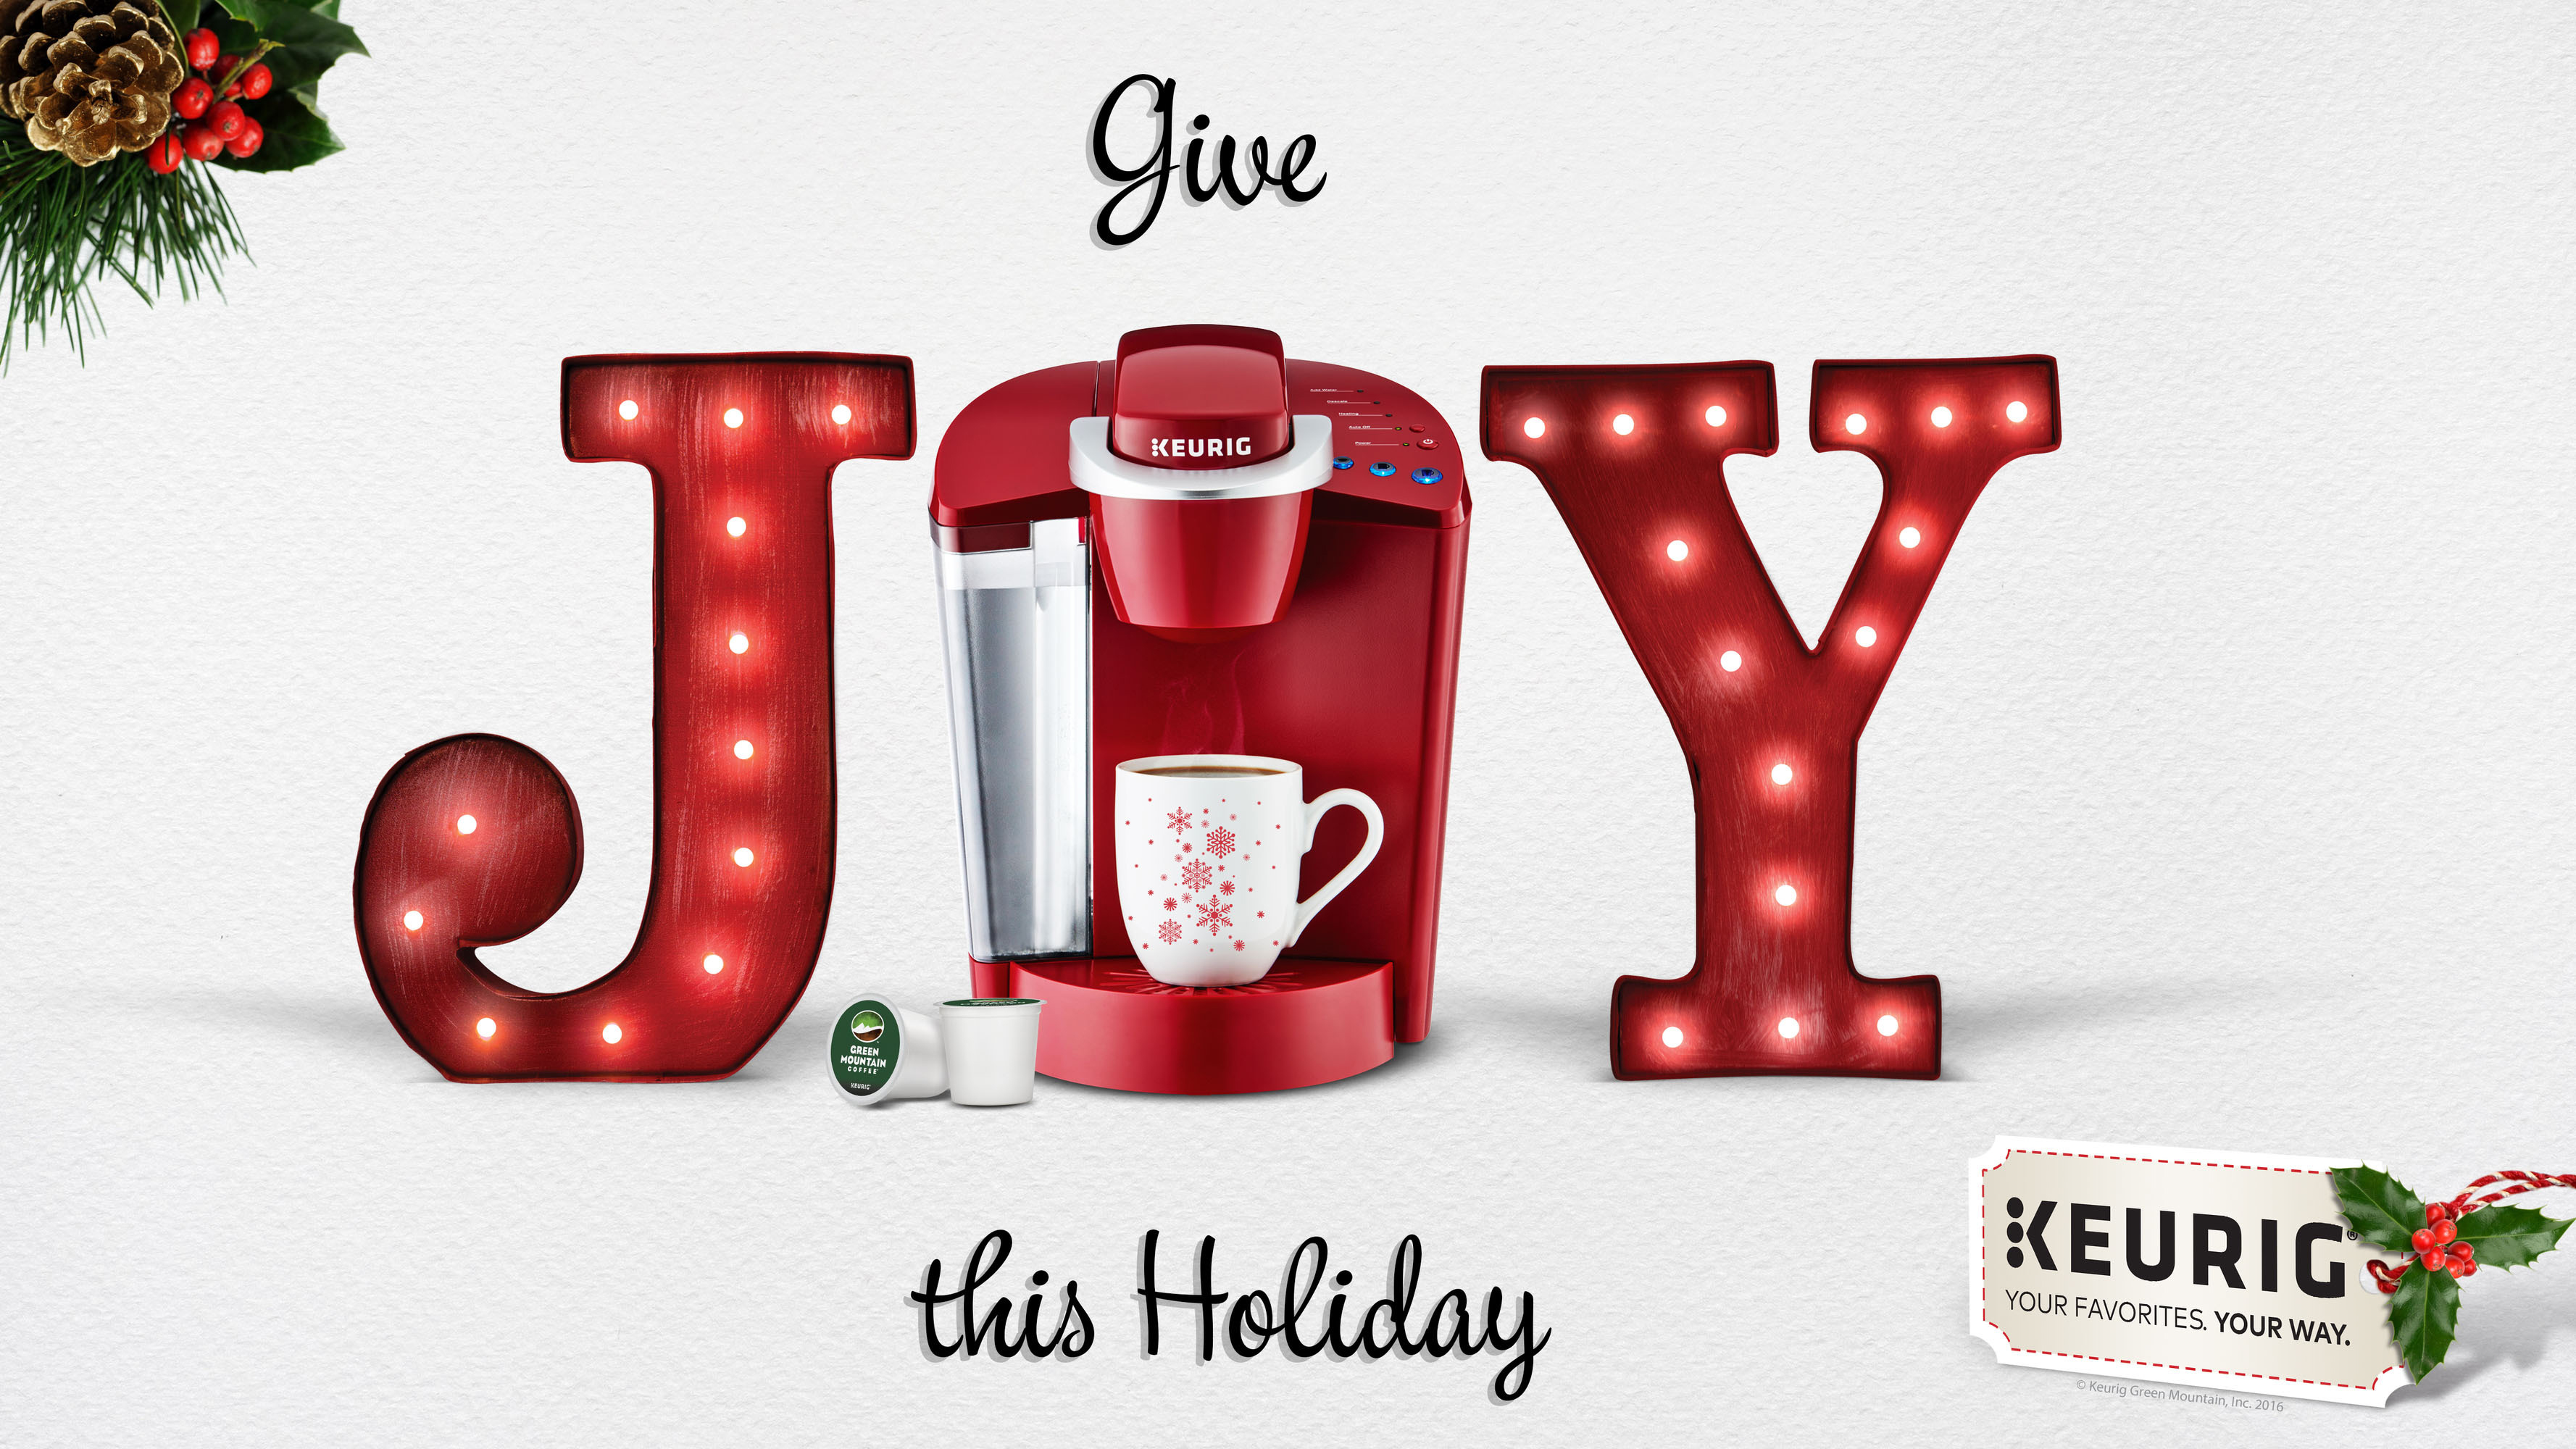 keurig-holiday